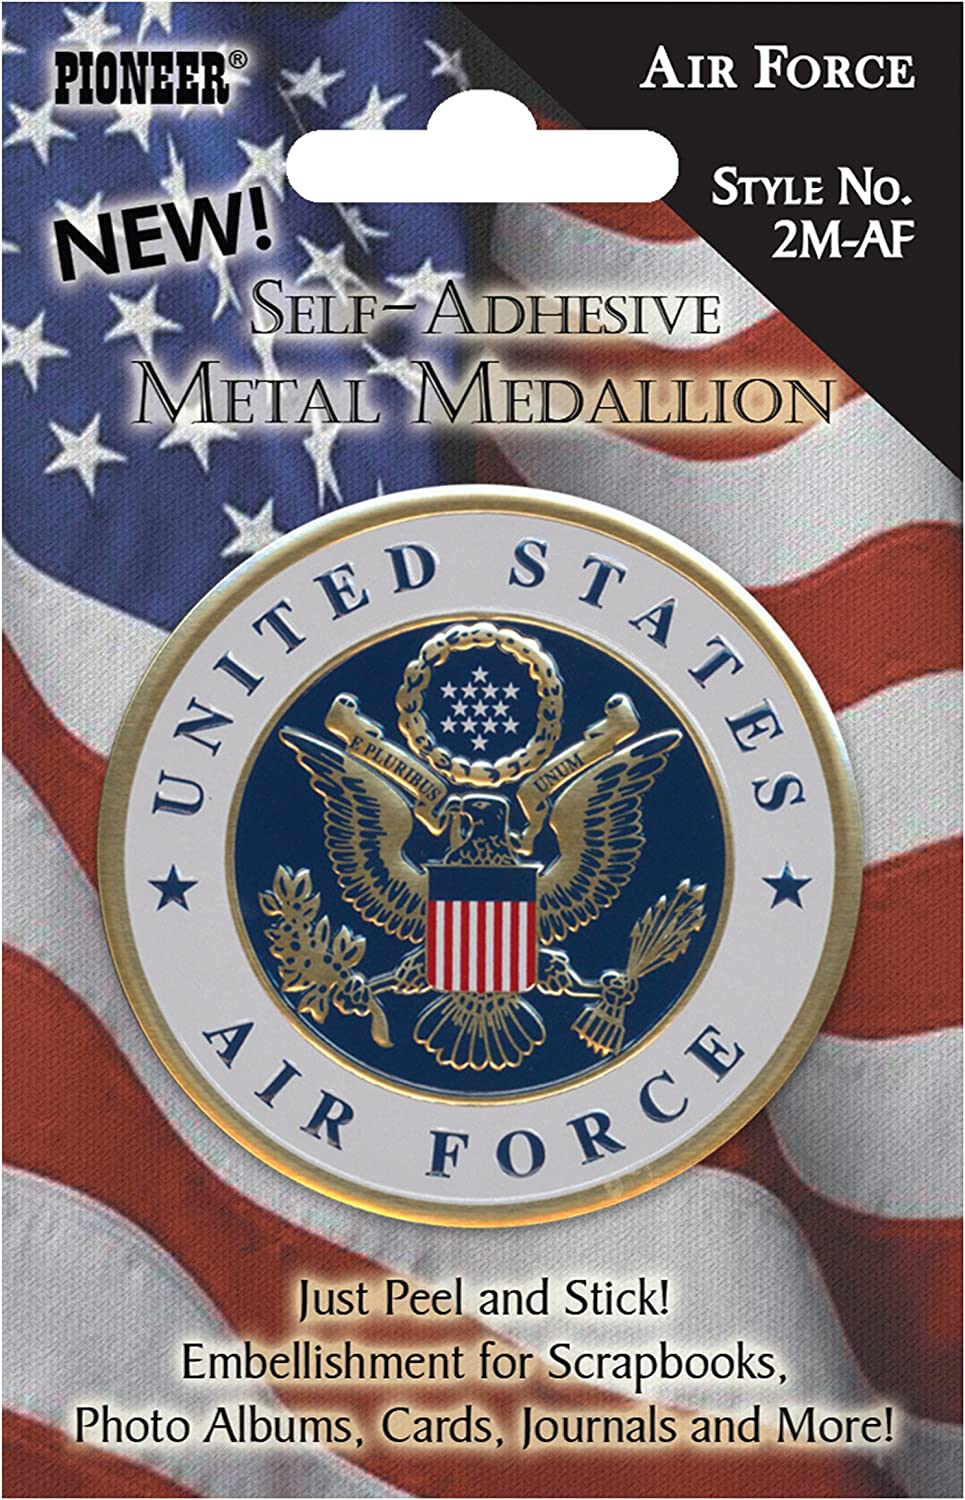 Pioneer 2M-AF Classic Max 75% OFF Scrapbooking Air Force Embellishment